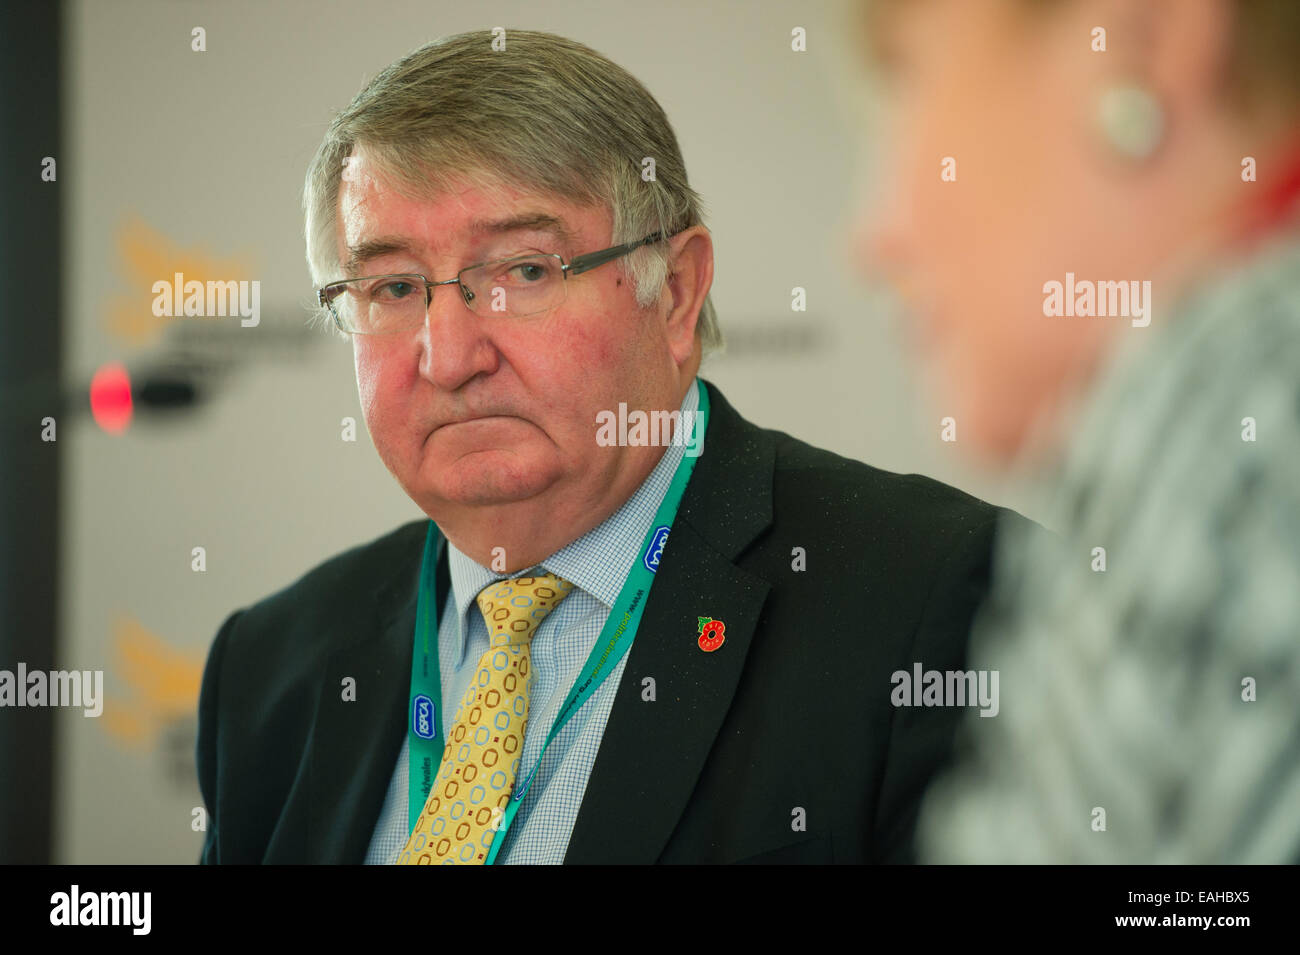 Aberystwyth, Wales, UK. 15th November, 2014. Roger Hugh Williams, CBE, MP, Member of Parliament (MP) for the constituency Stock Photo